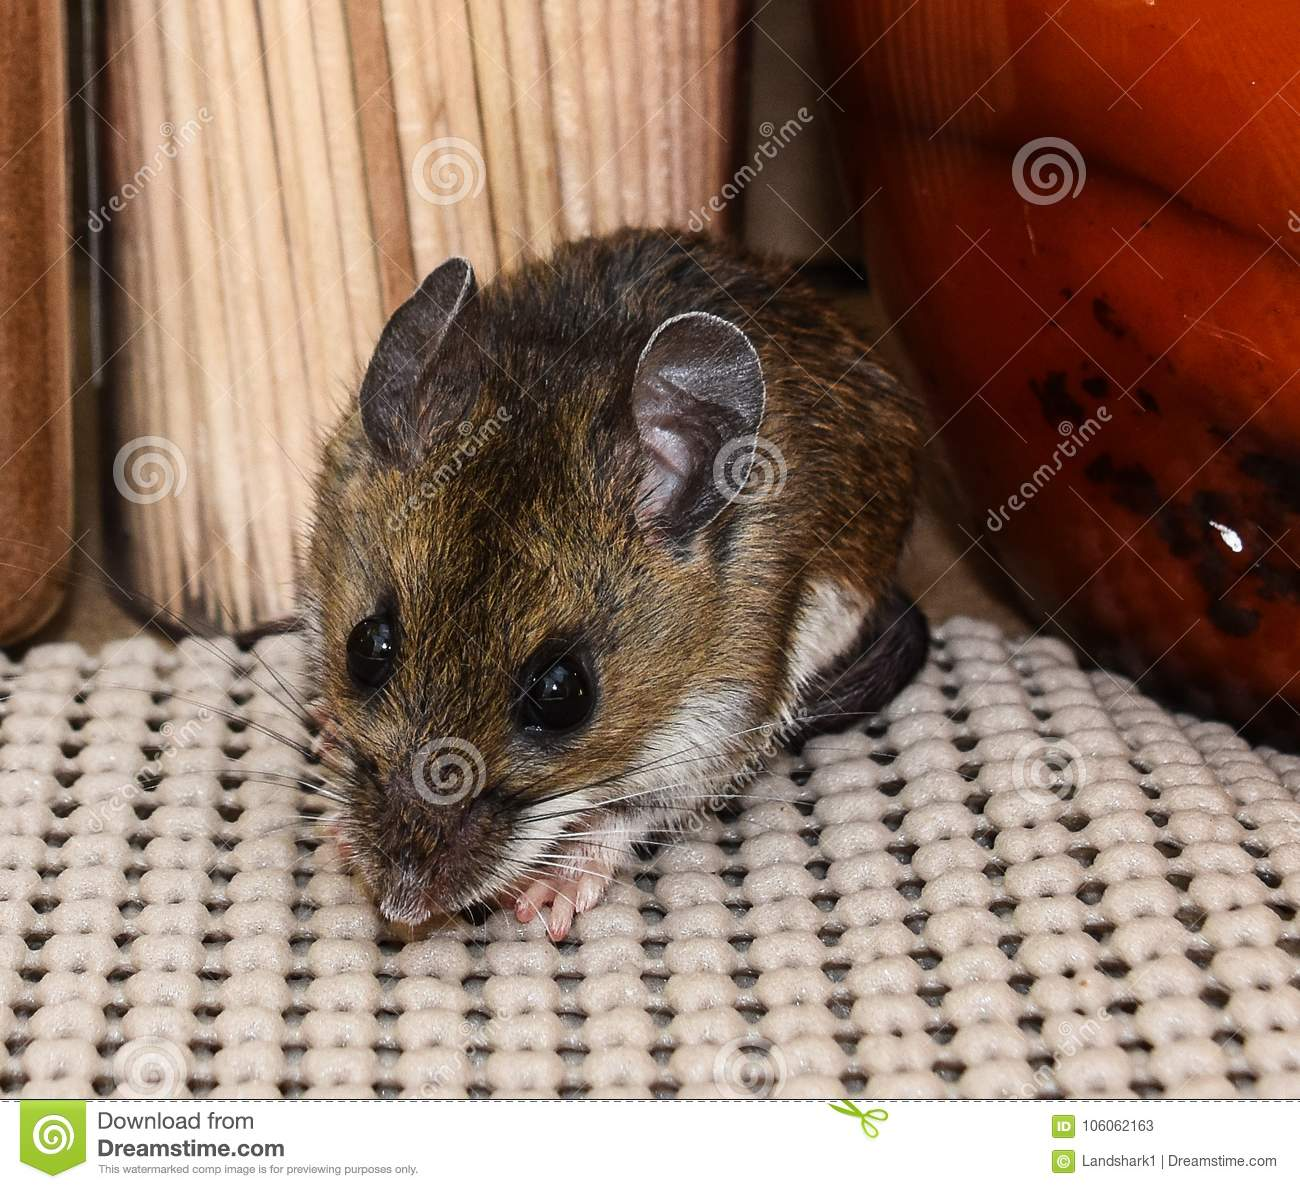 Close Up Face View Of A Wild Gray House Mouse, Mus Musculus, In A ...